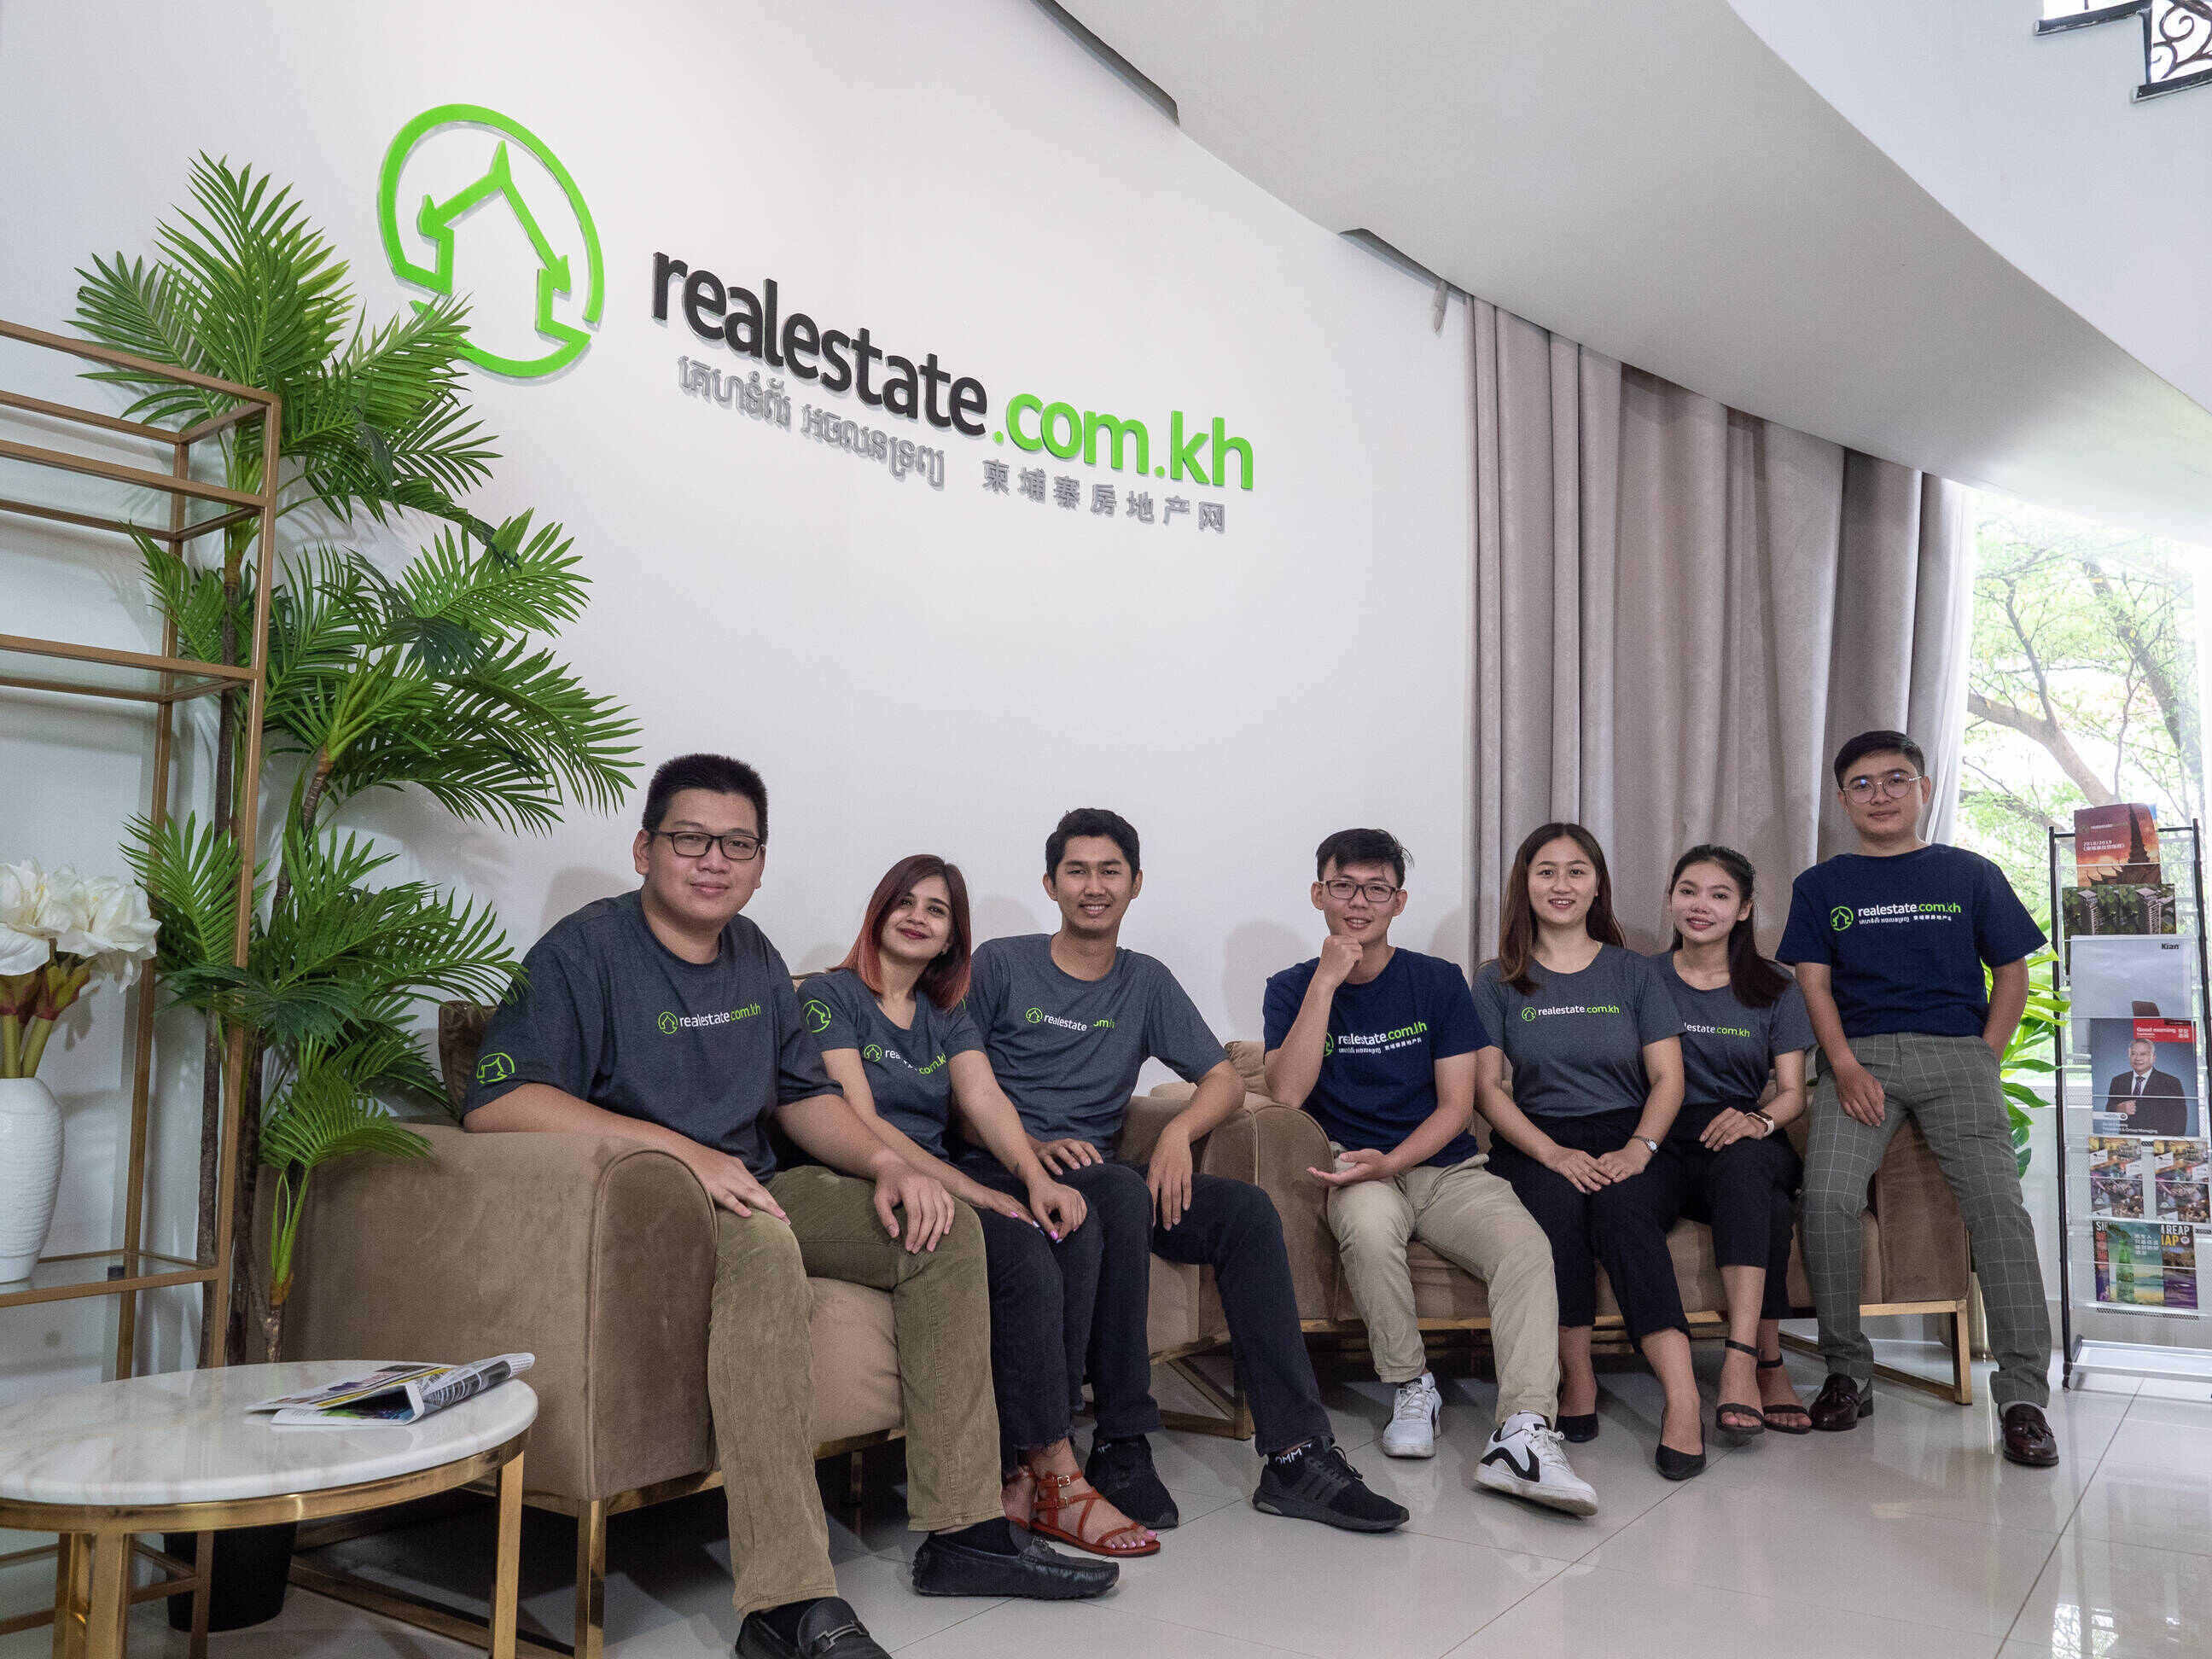 https://www.realestate.com.kh/static/img/about/our-team-4.jpg